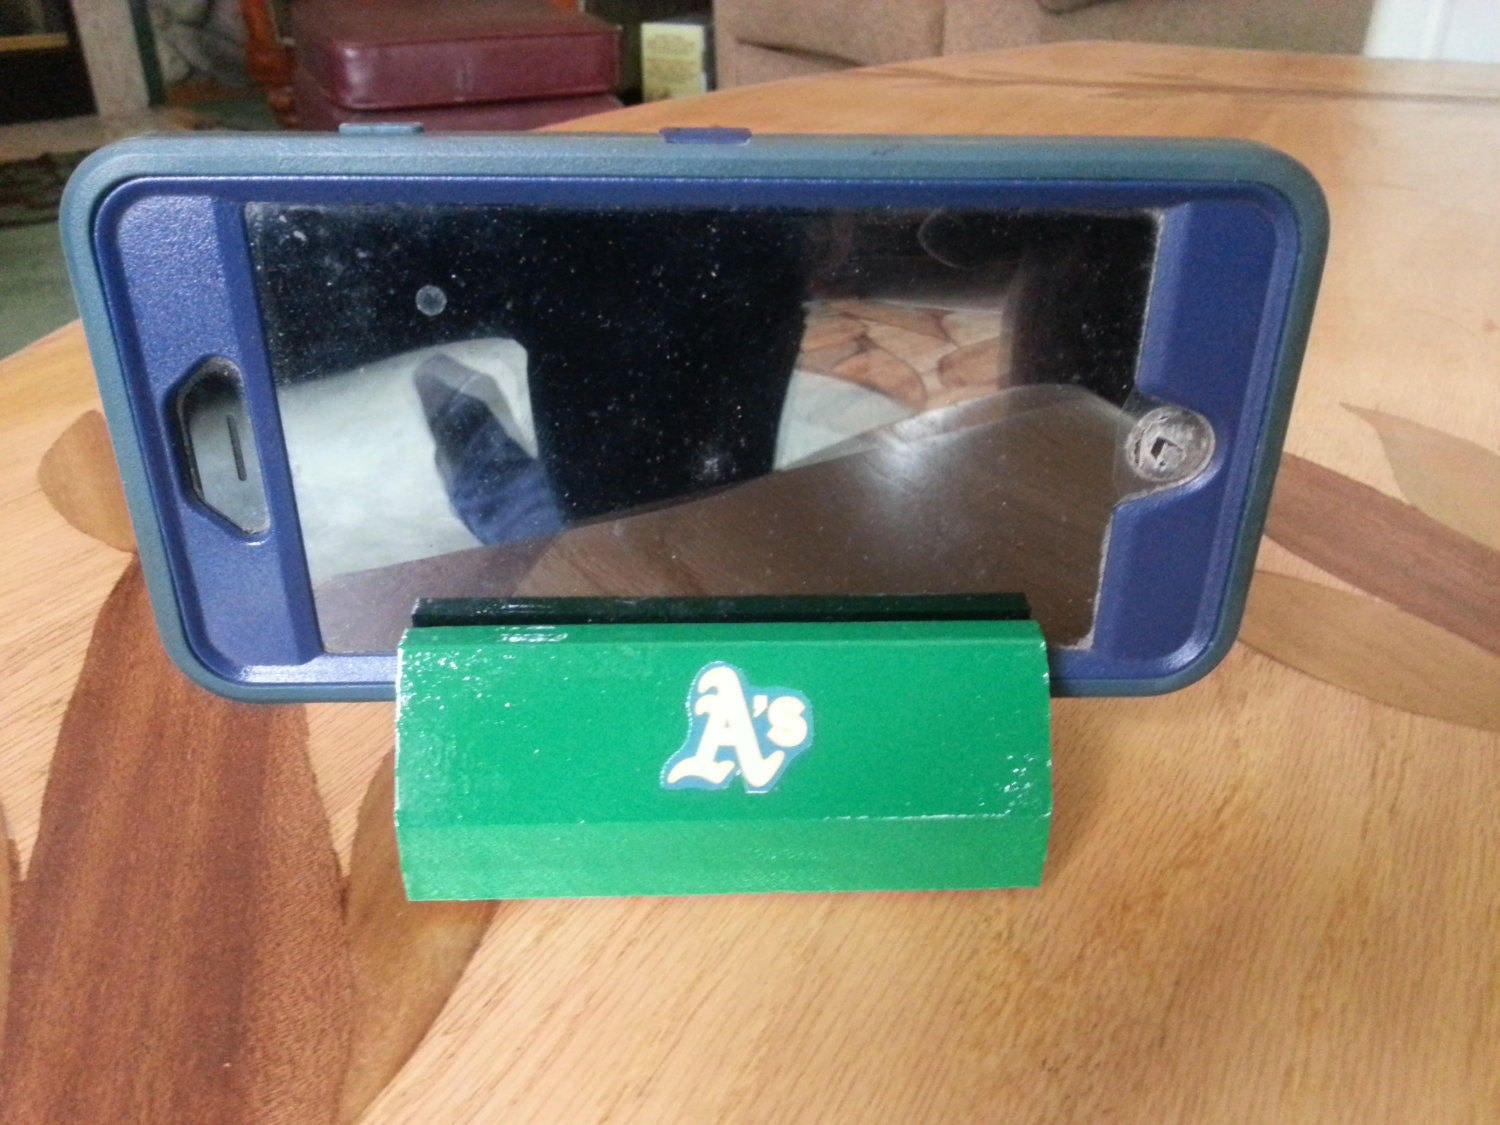 MLB cell phone stand wood docking station sports team business ...